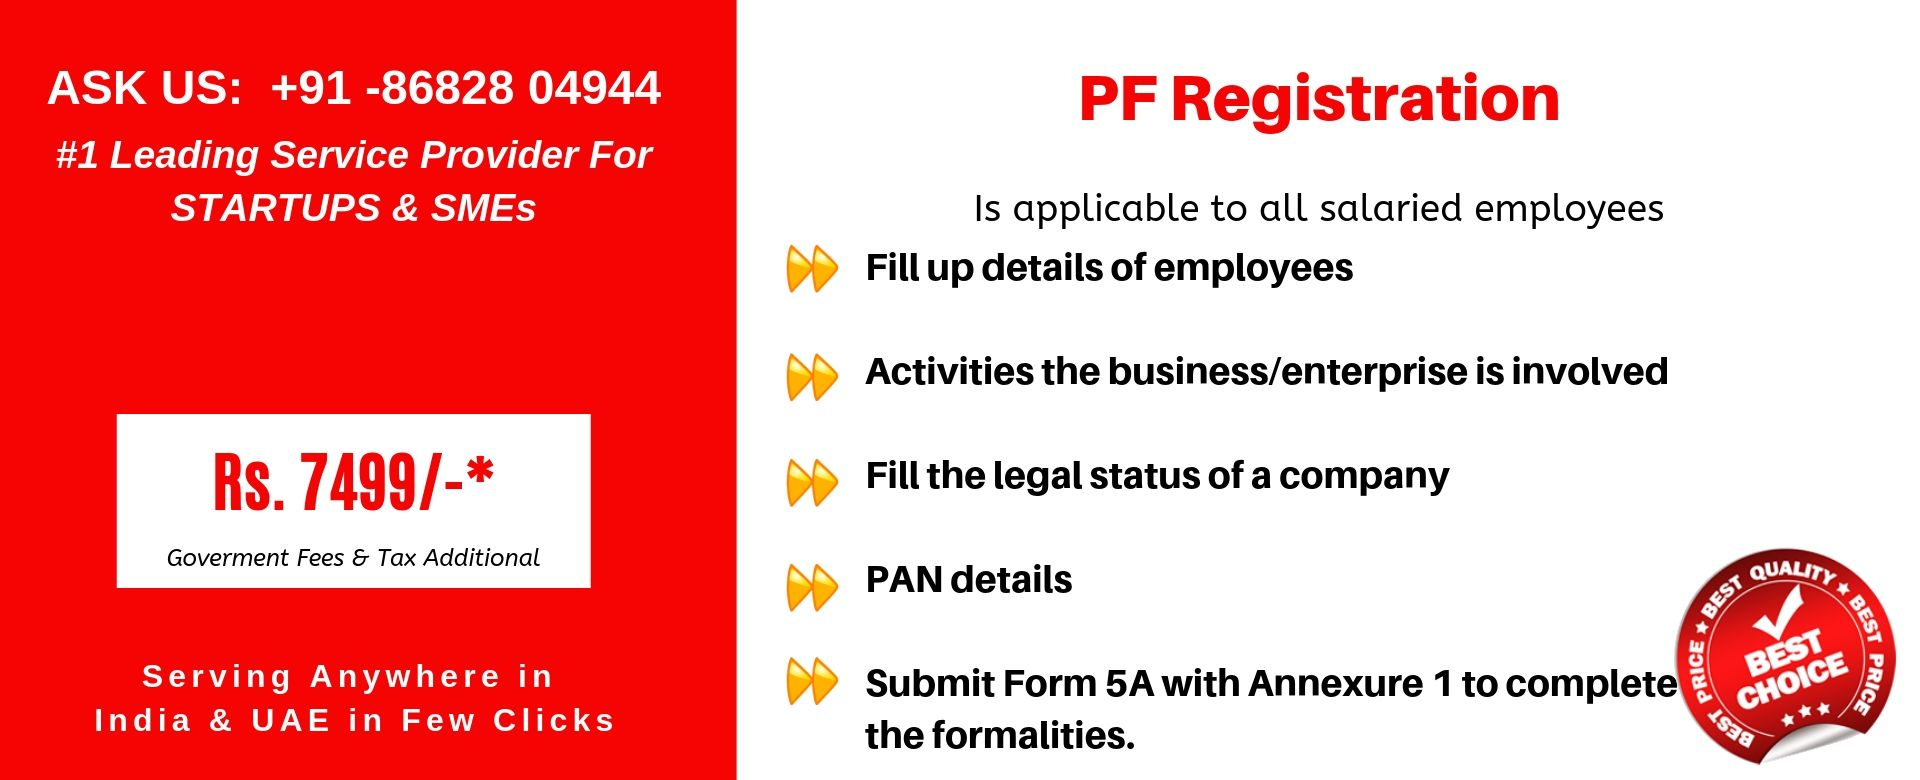 pf registration in india